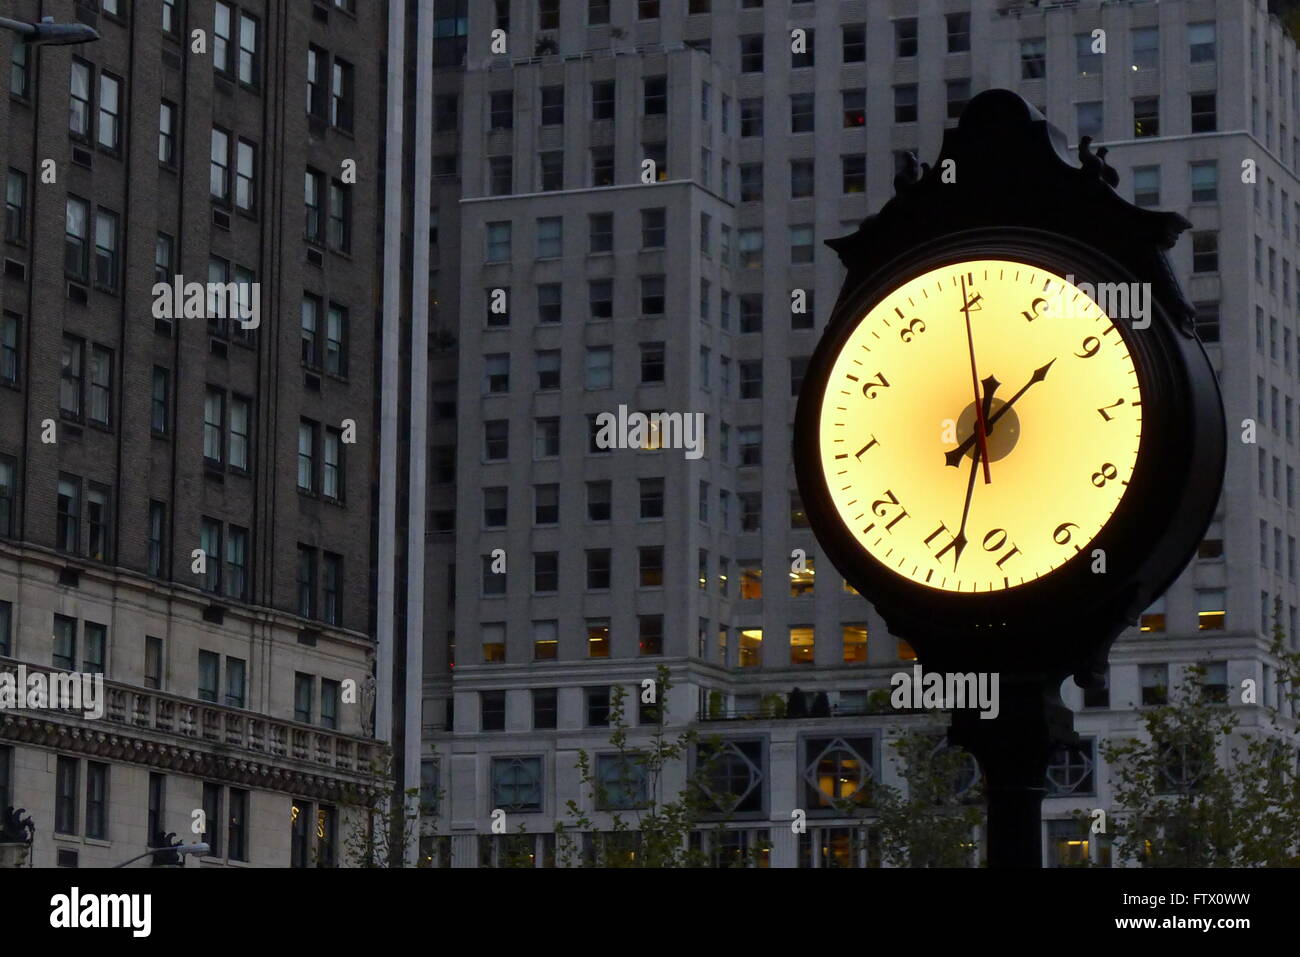 Rotating Face Clock in New York City - Stock Image